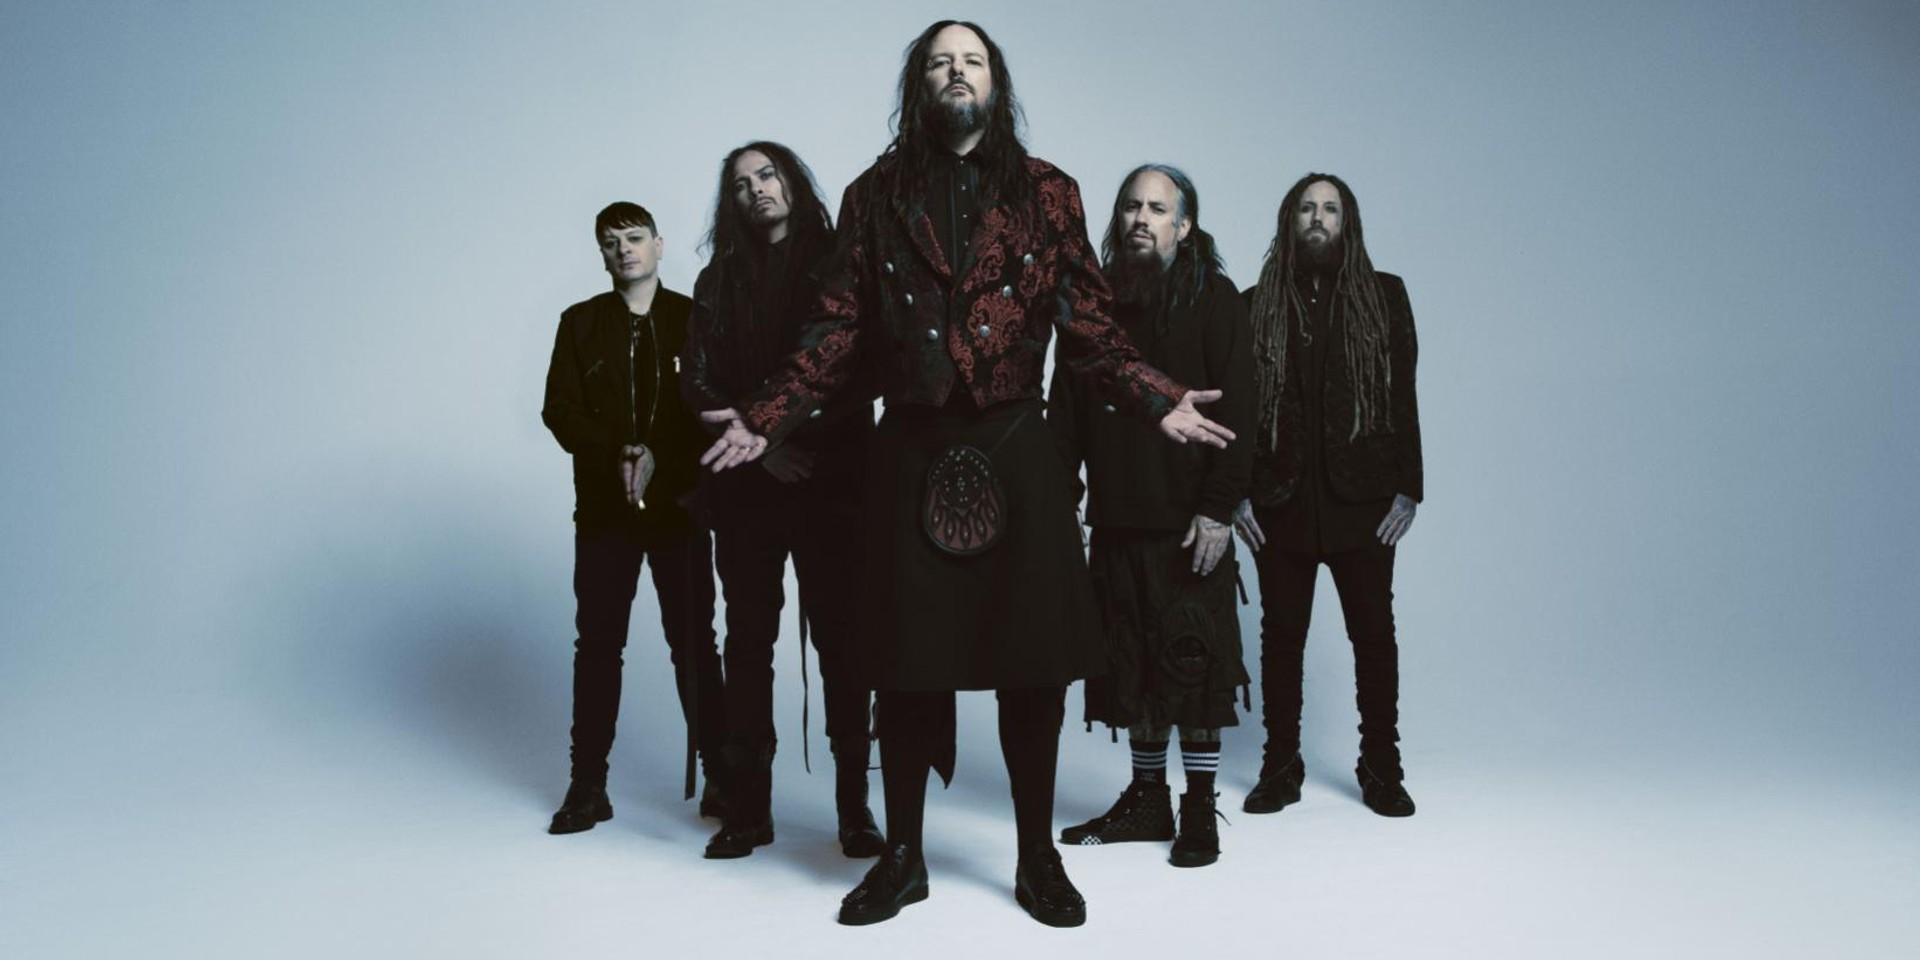 Korn announces new album, releases new single 'You'll Never Find Me' – listen